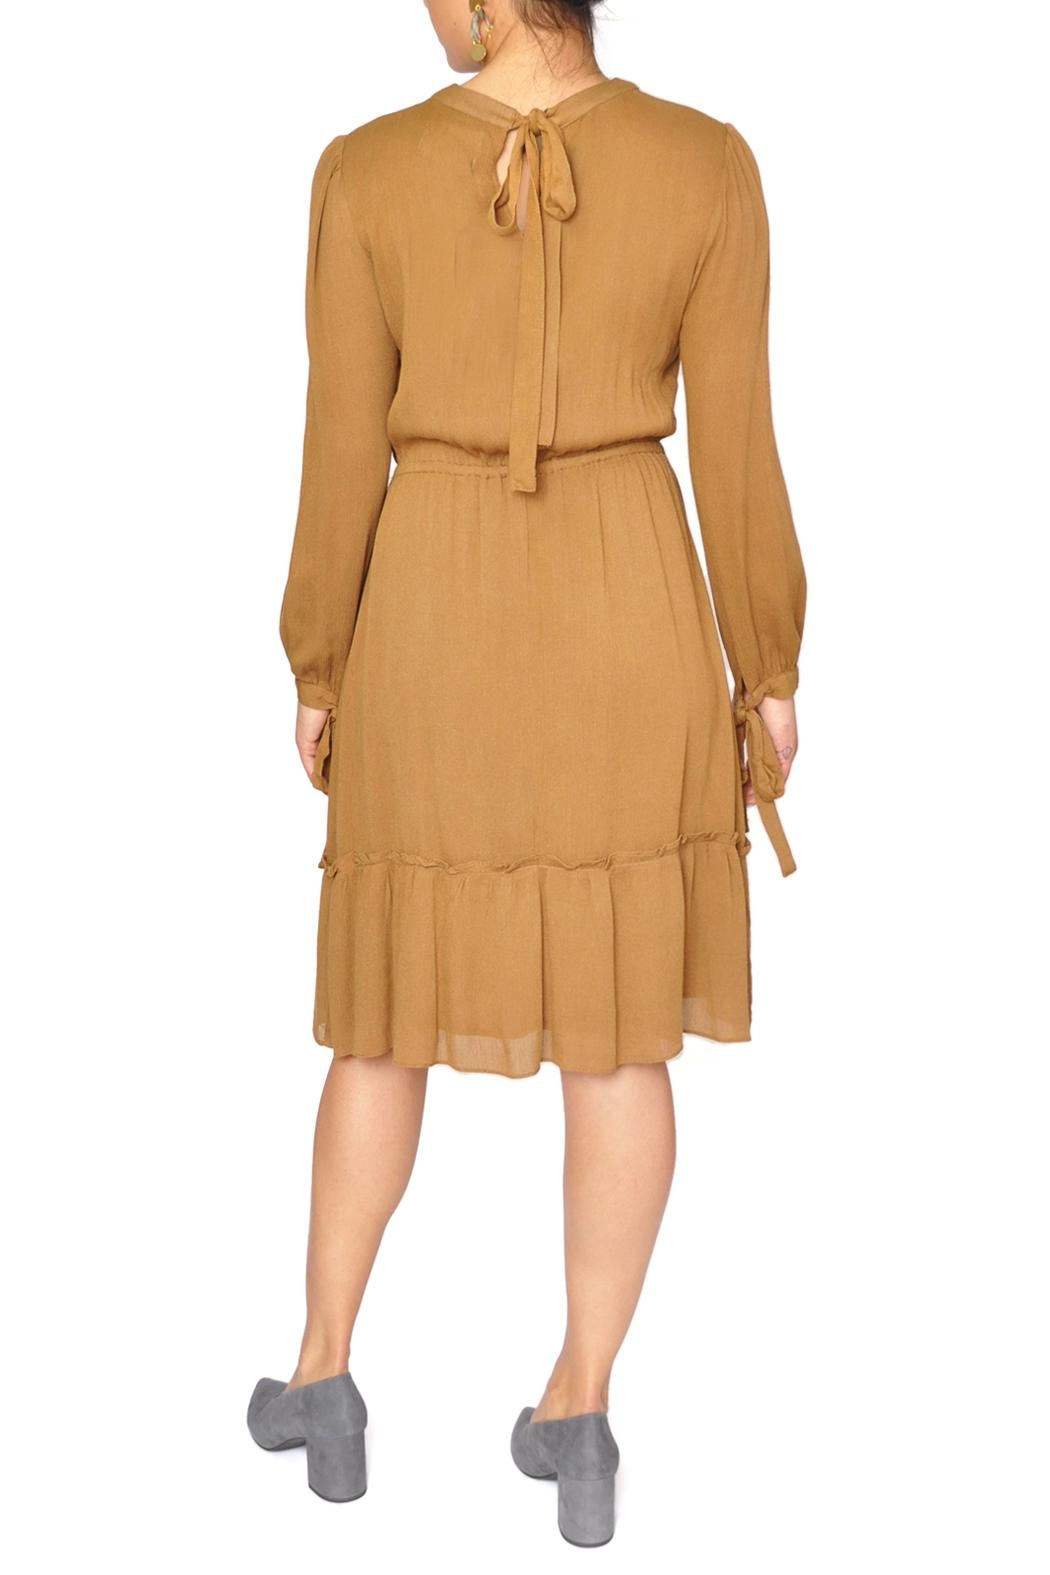 Moon River Mustard Yellow Dress - Side Cropped Image